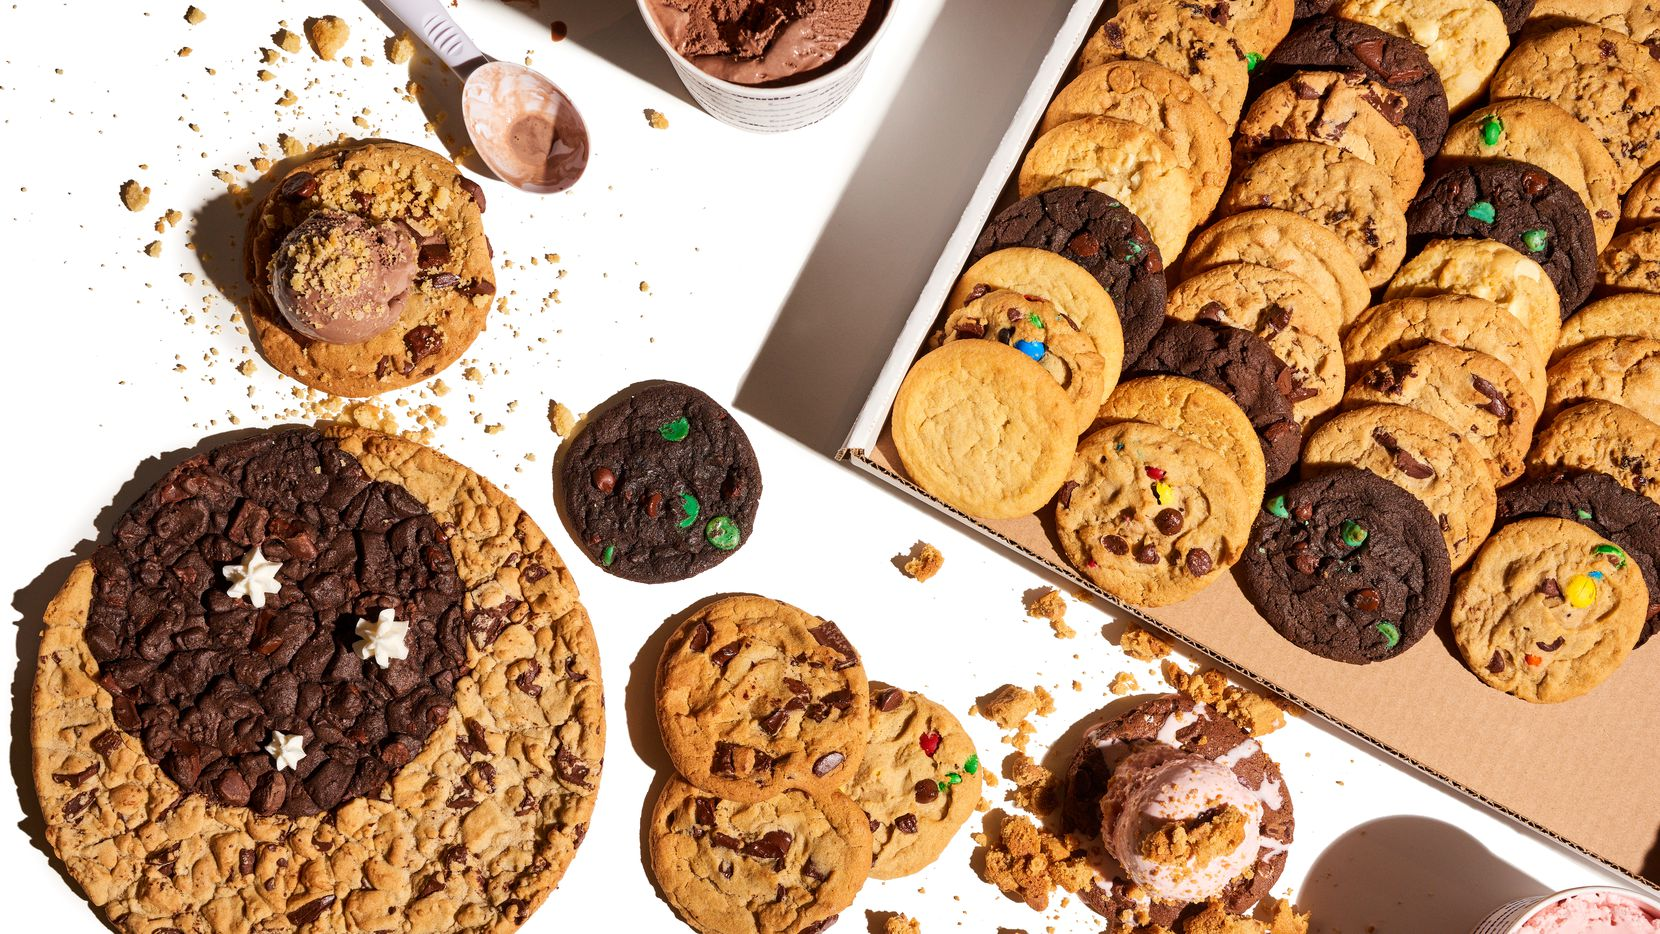 Insomnia Cookies opened in Deep Ellum on Feb. 10, 2021 and is the company's first Dallas shop. A second shop is expected to open in Dallas in March 2021.